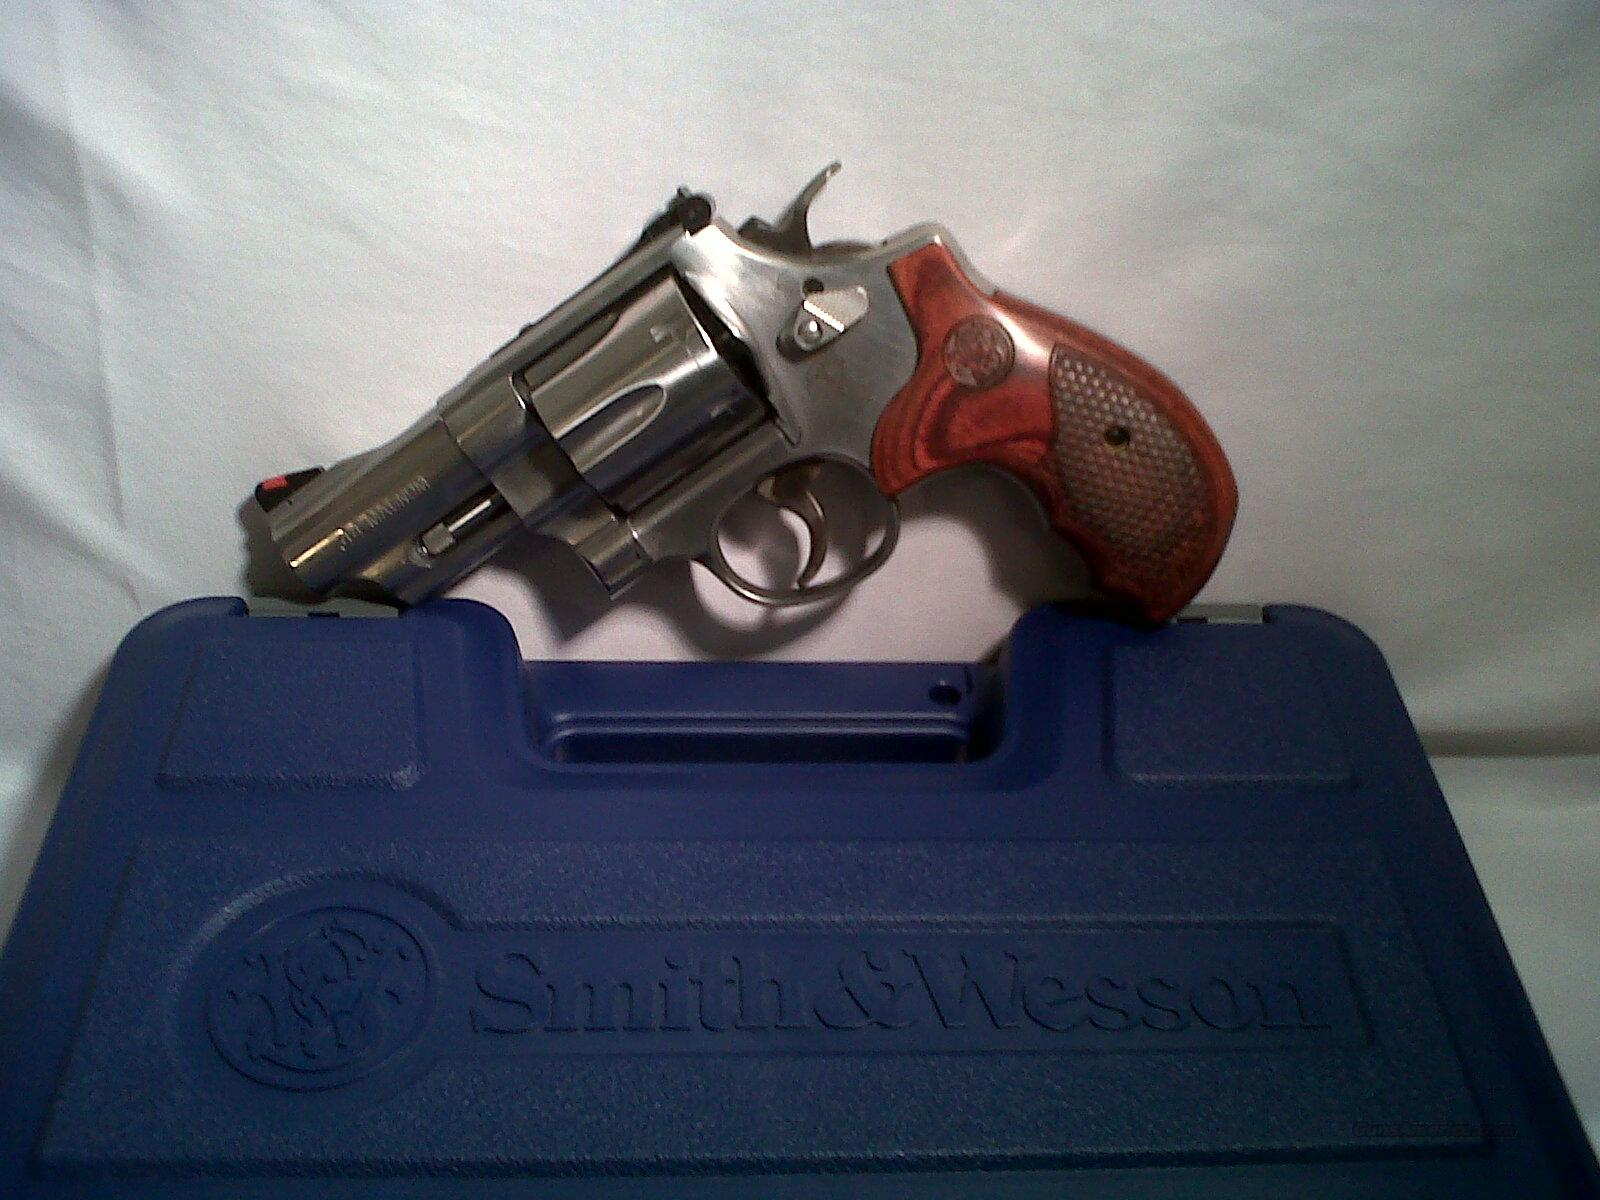 "Smith&wesson Model 629 Deluxe TALO 44 magnum 3"" barrel Sku:150715 checkered wood grips  Guns > Pistols > Smith & Wesson Revolvers > Model 629"